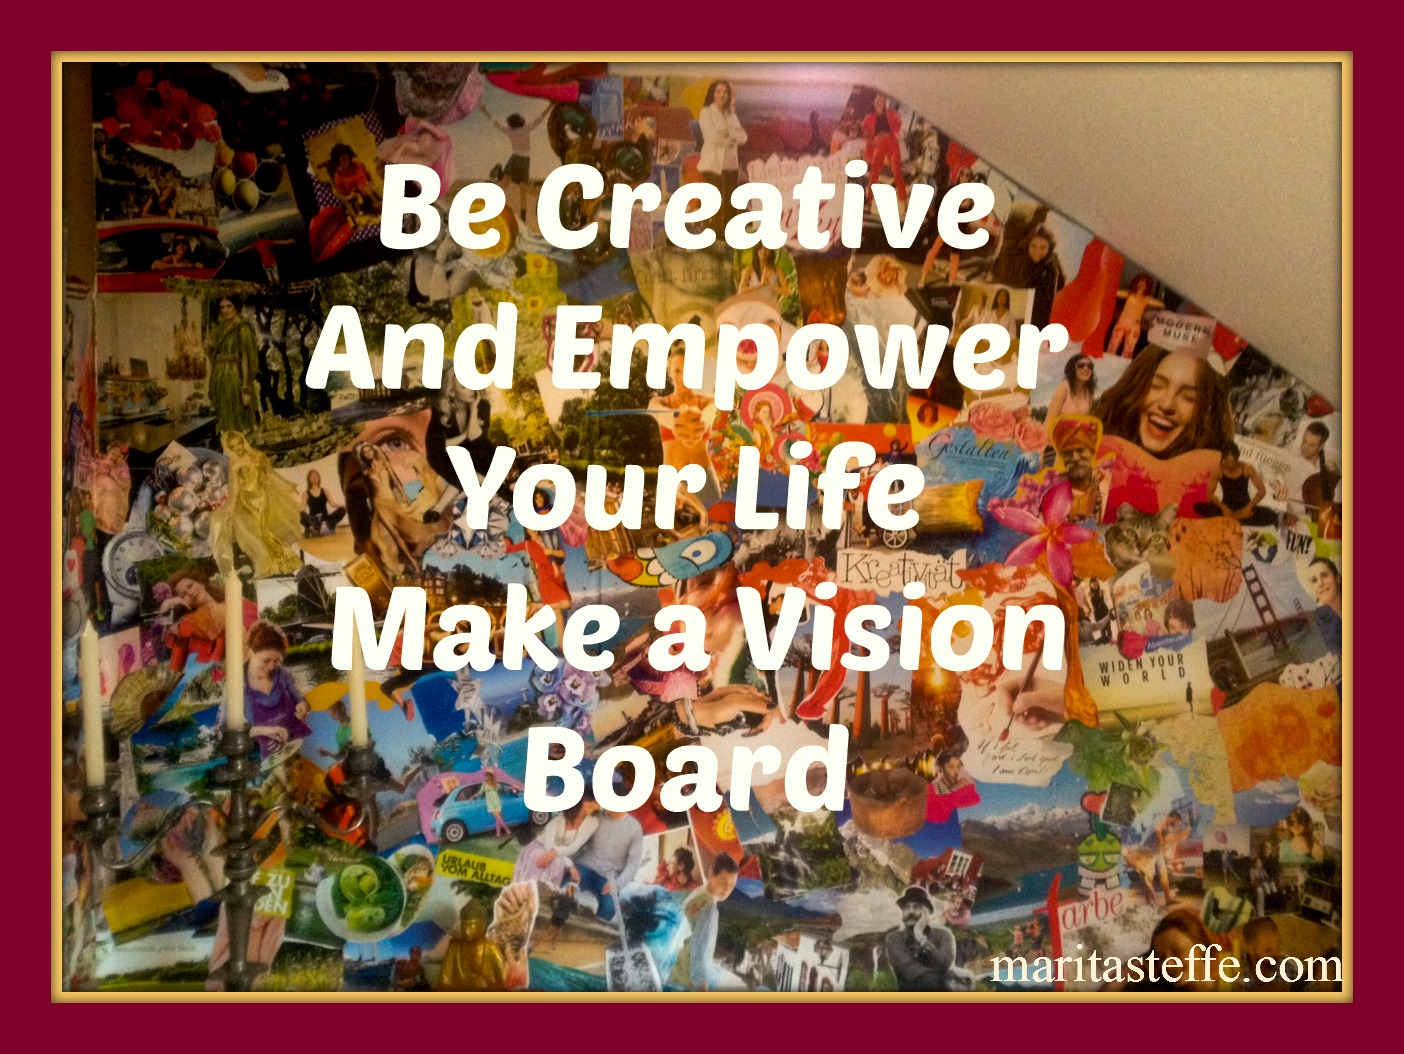 Be Creative And Empower Your Life  Make a Vision Board